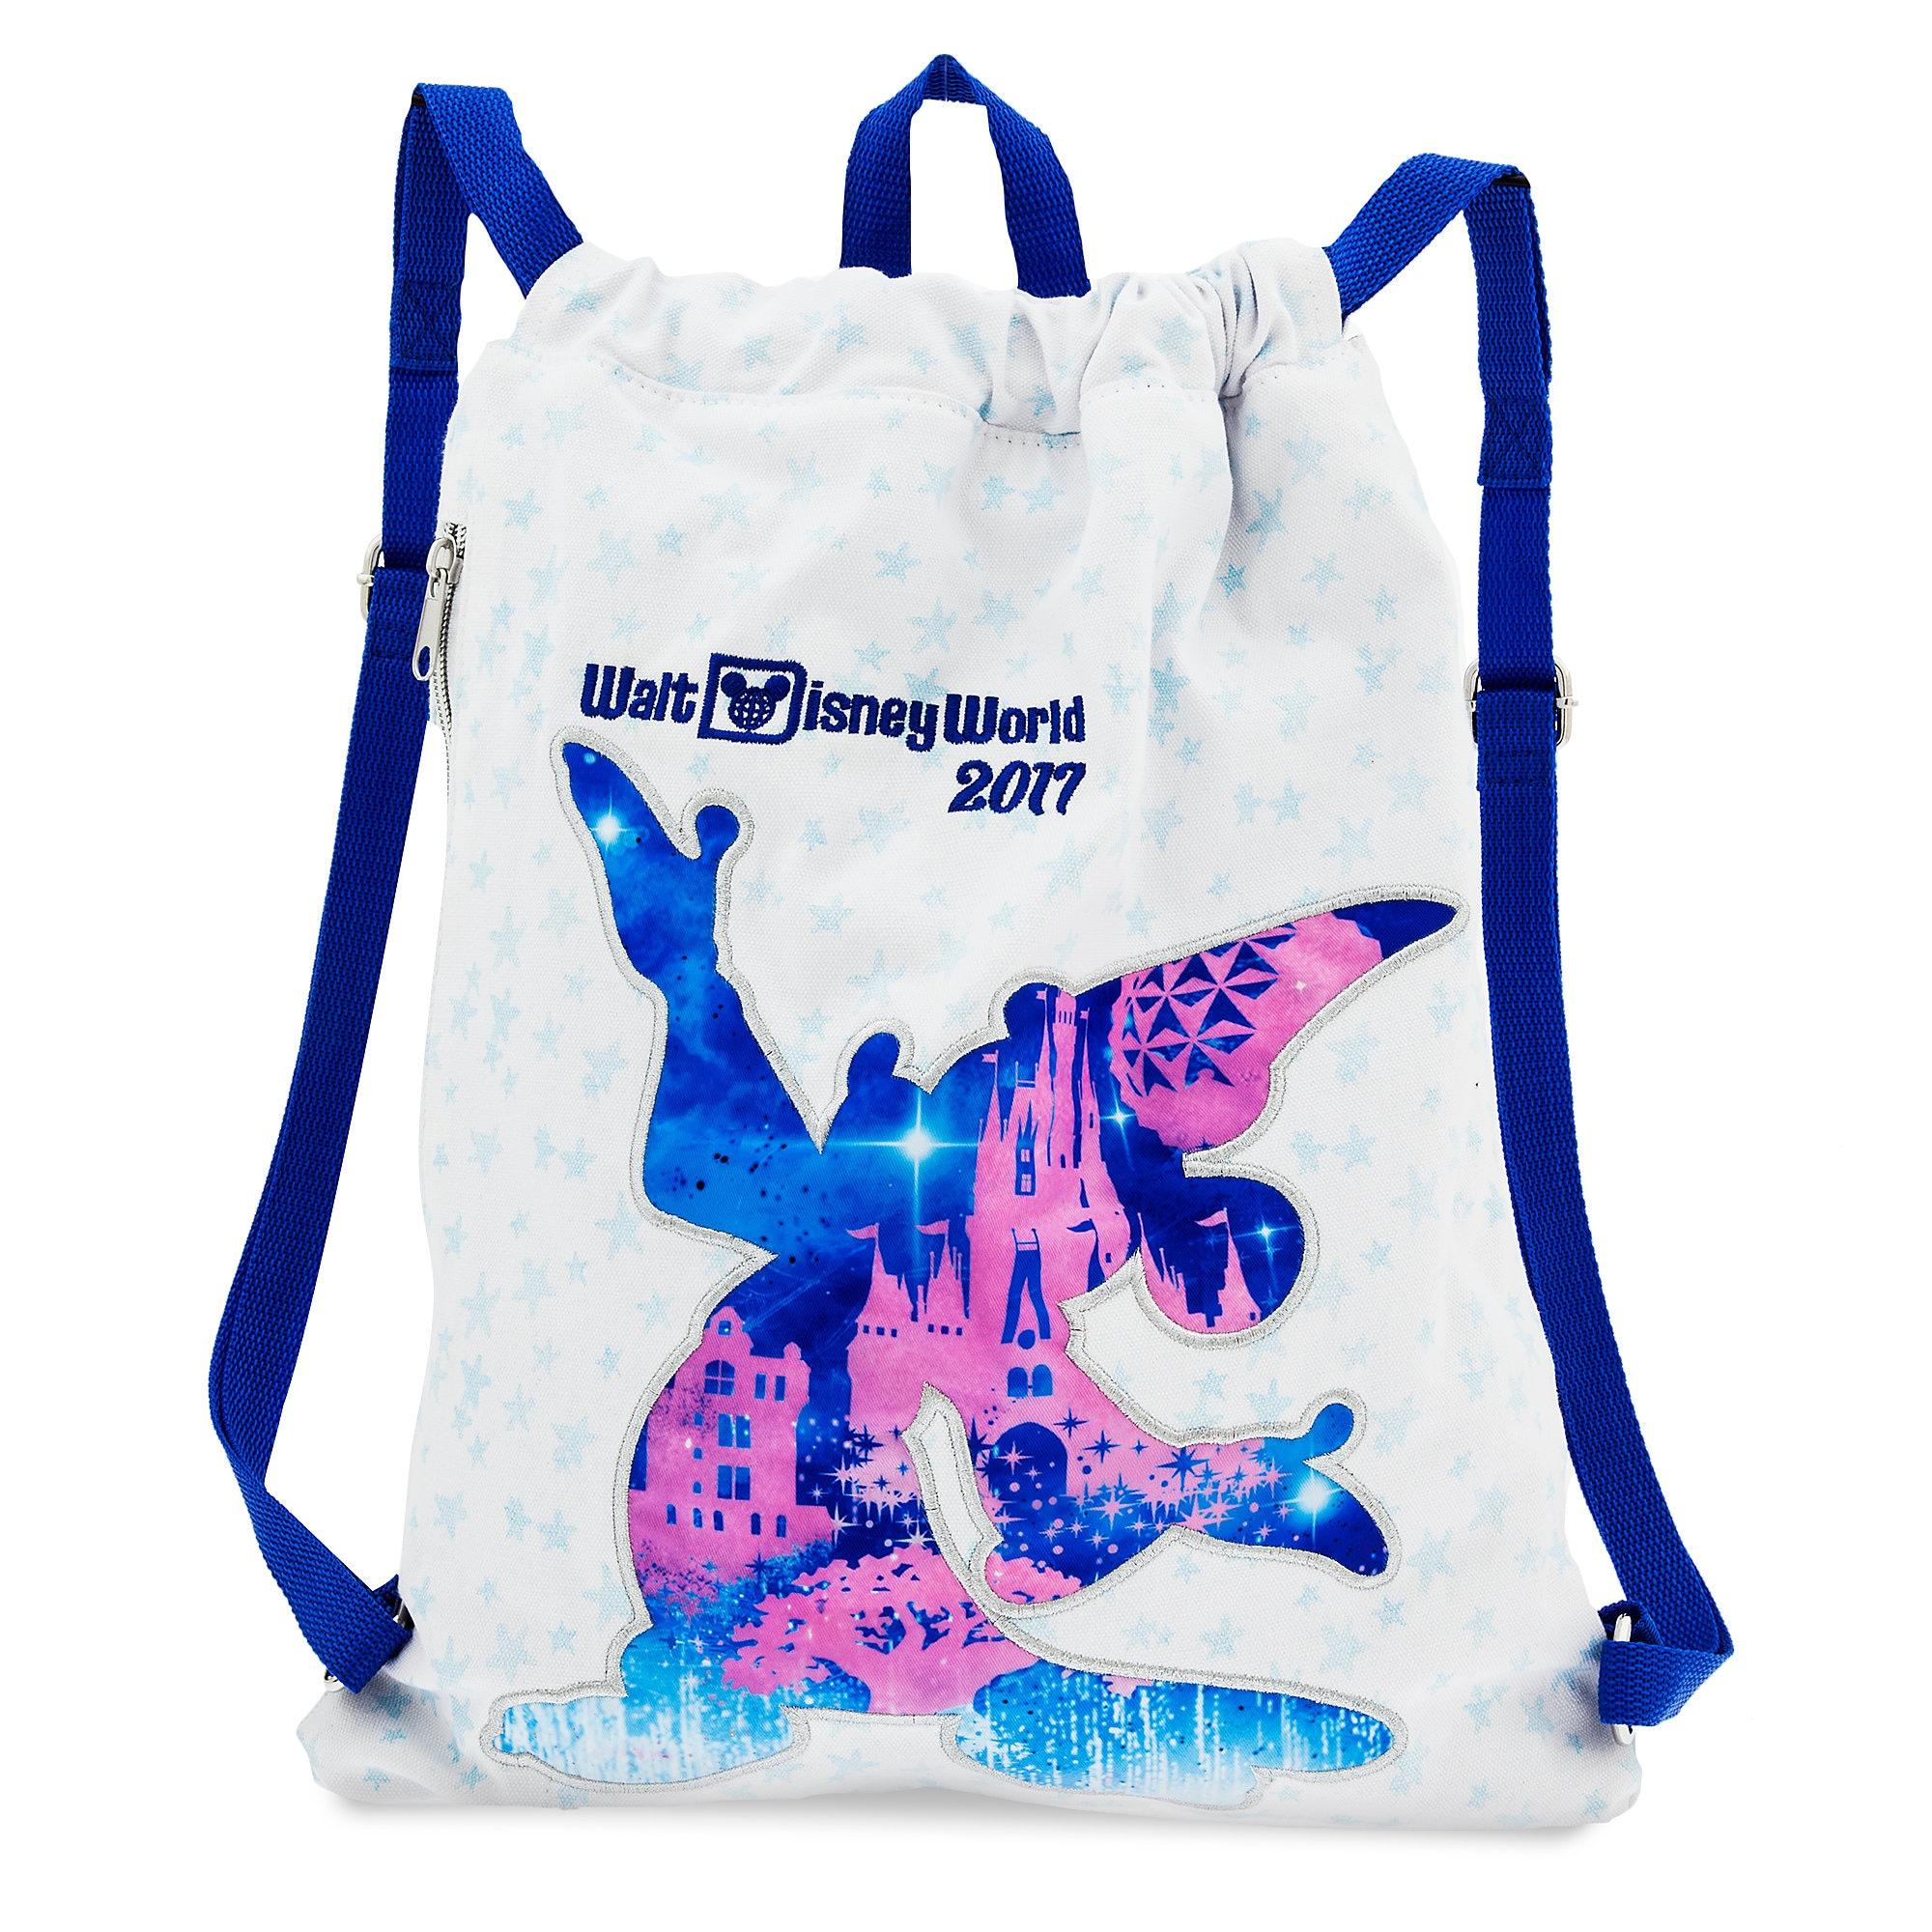 Sorcerer Mickey Mouse Cinch Sack Tote - Walt Disney World 2017